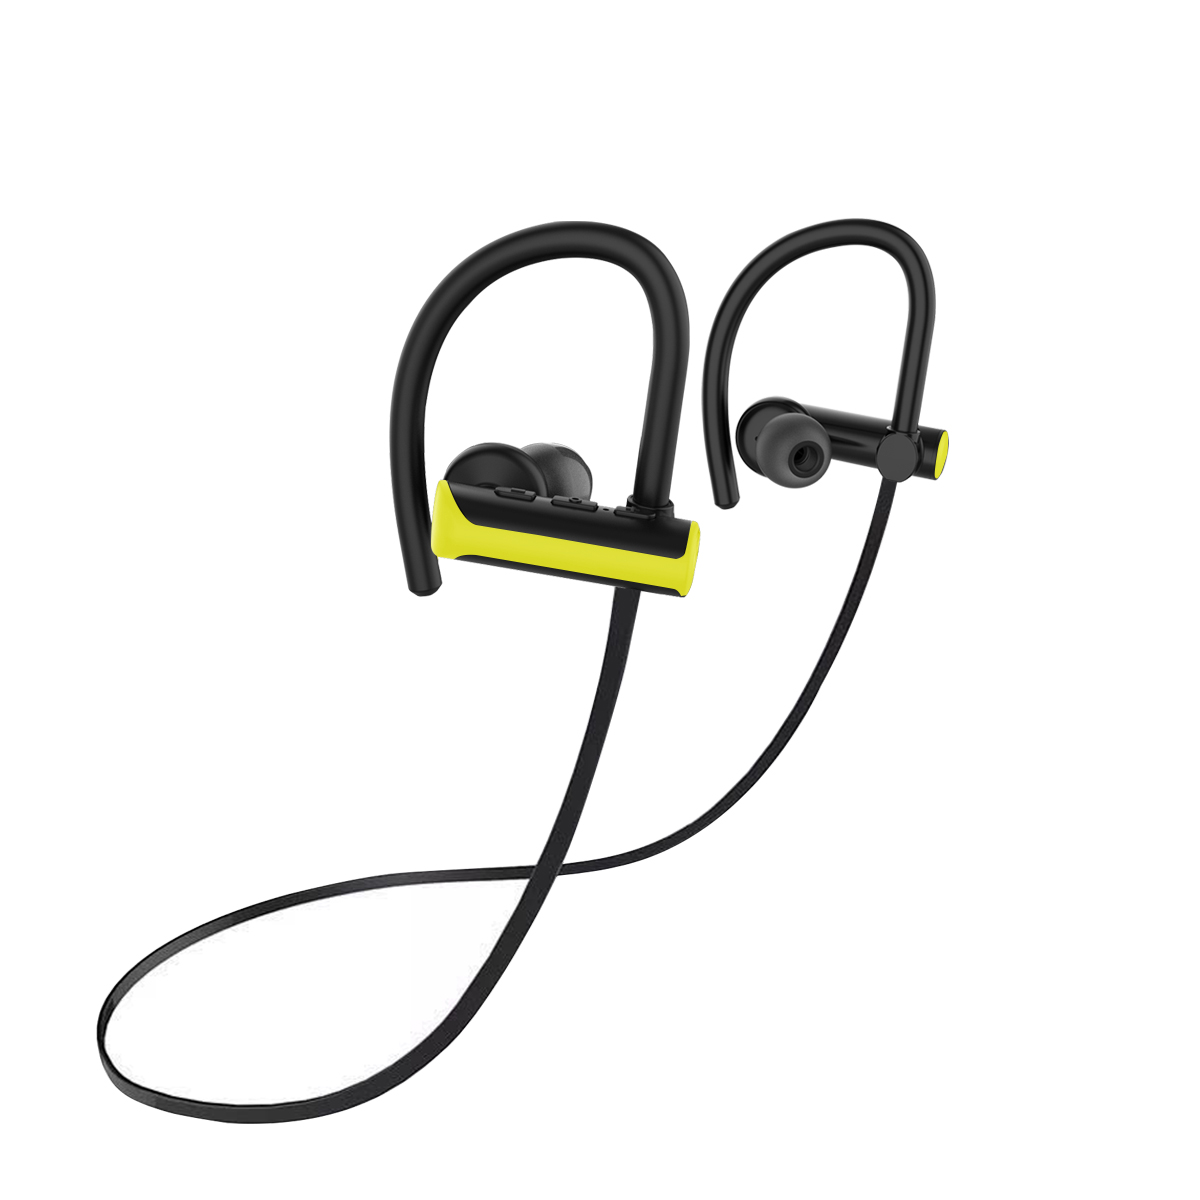 HP1111 sport neckband headphone